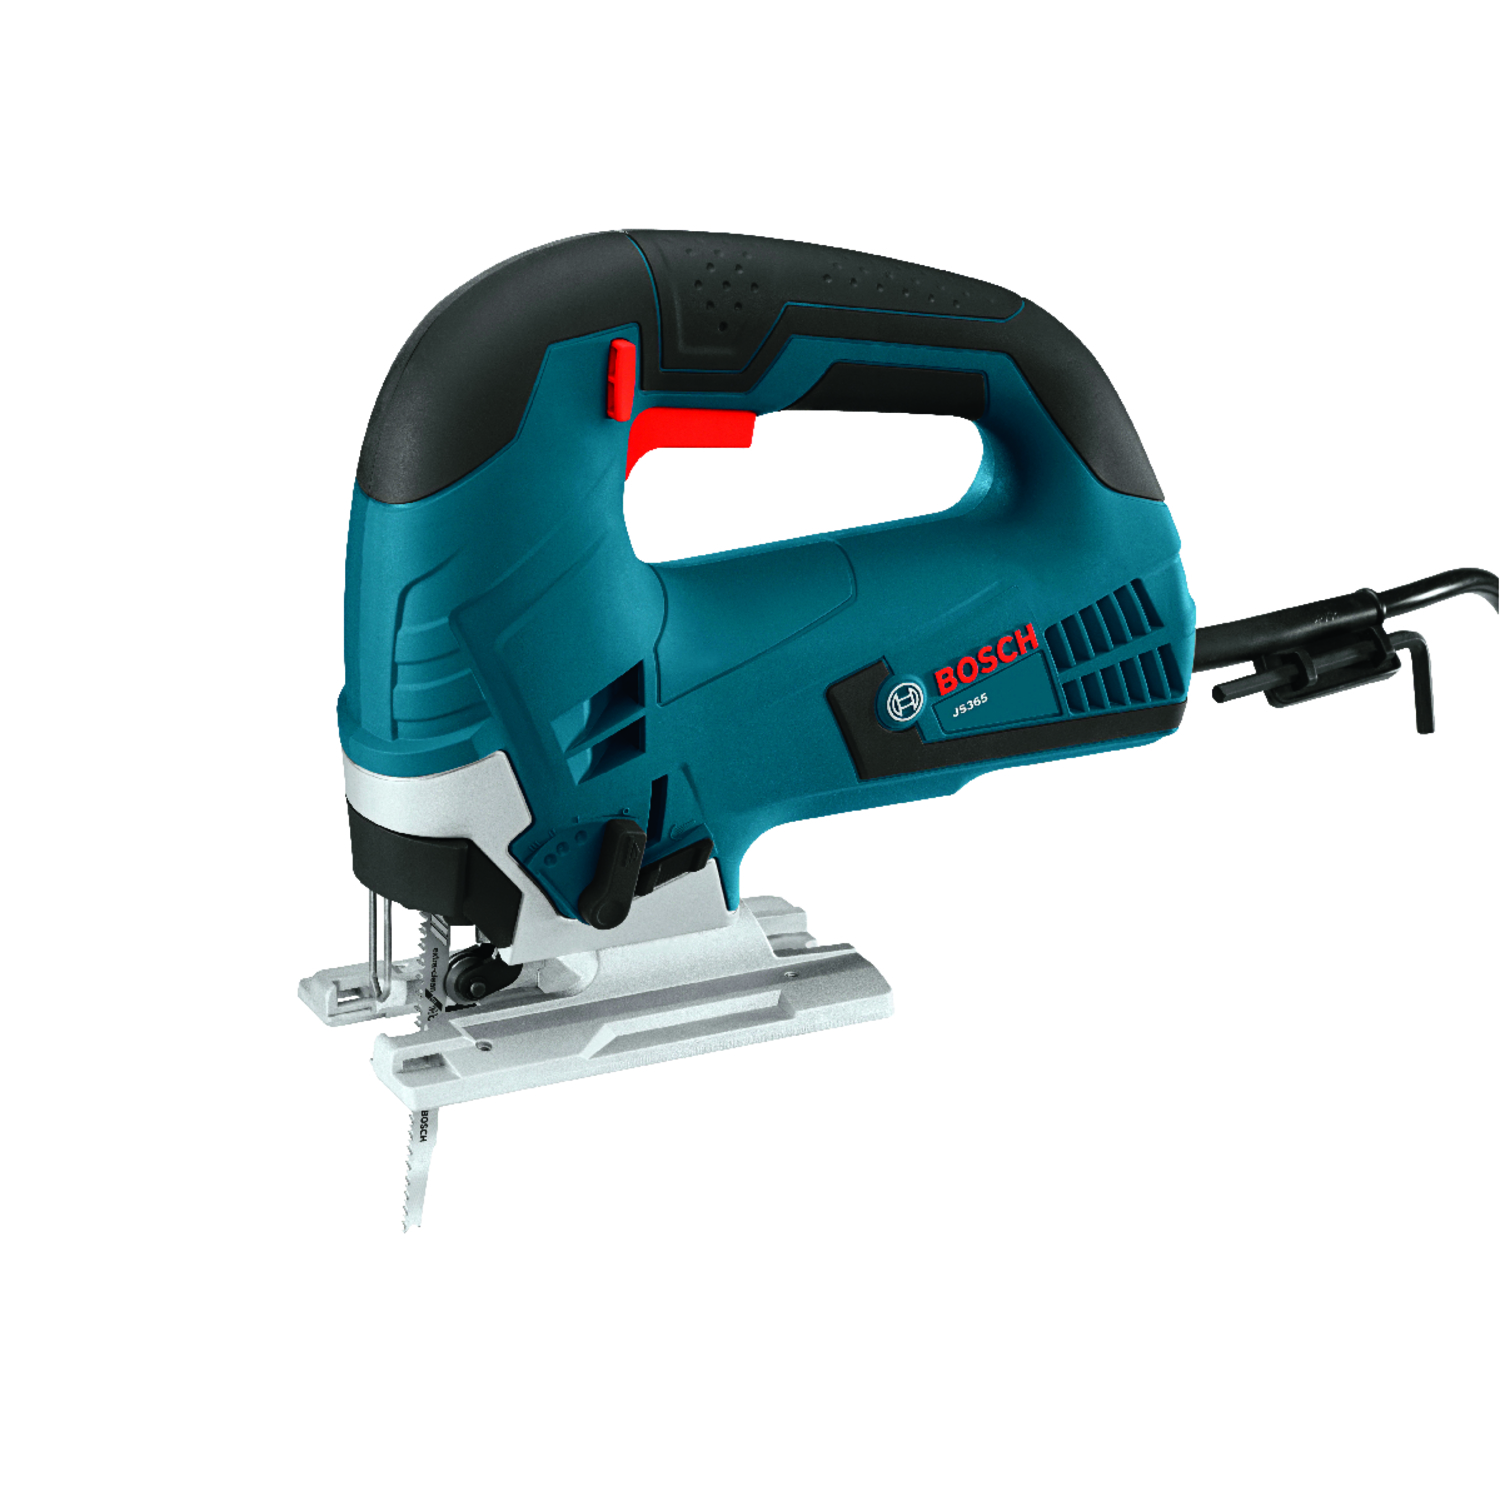 Bosch 1 in. Corded Keyless Orbital Jig Saw Bare Tool 120 volt 6.5 amps 3100 spm -  JS365